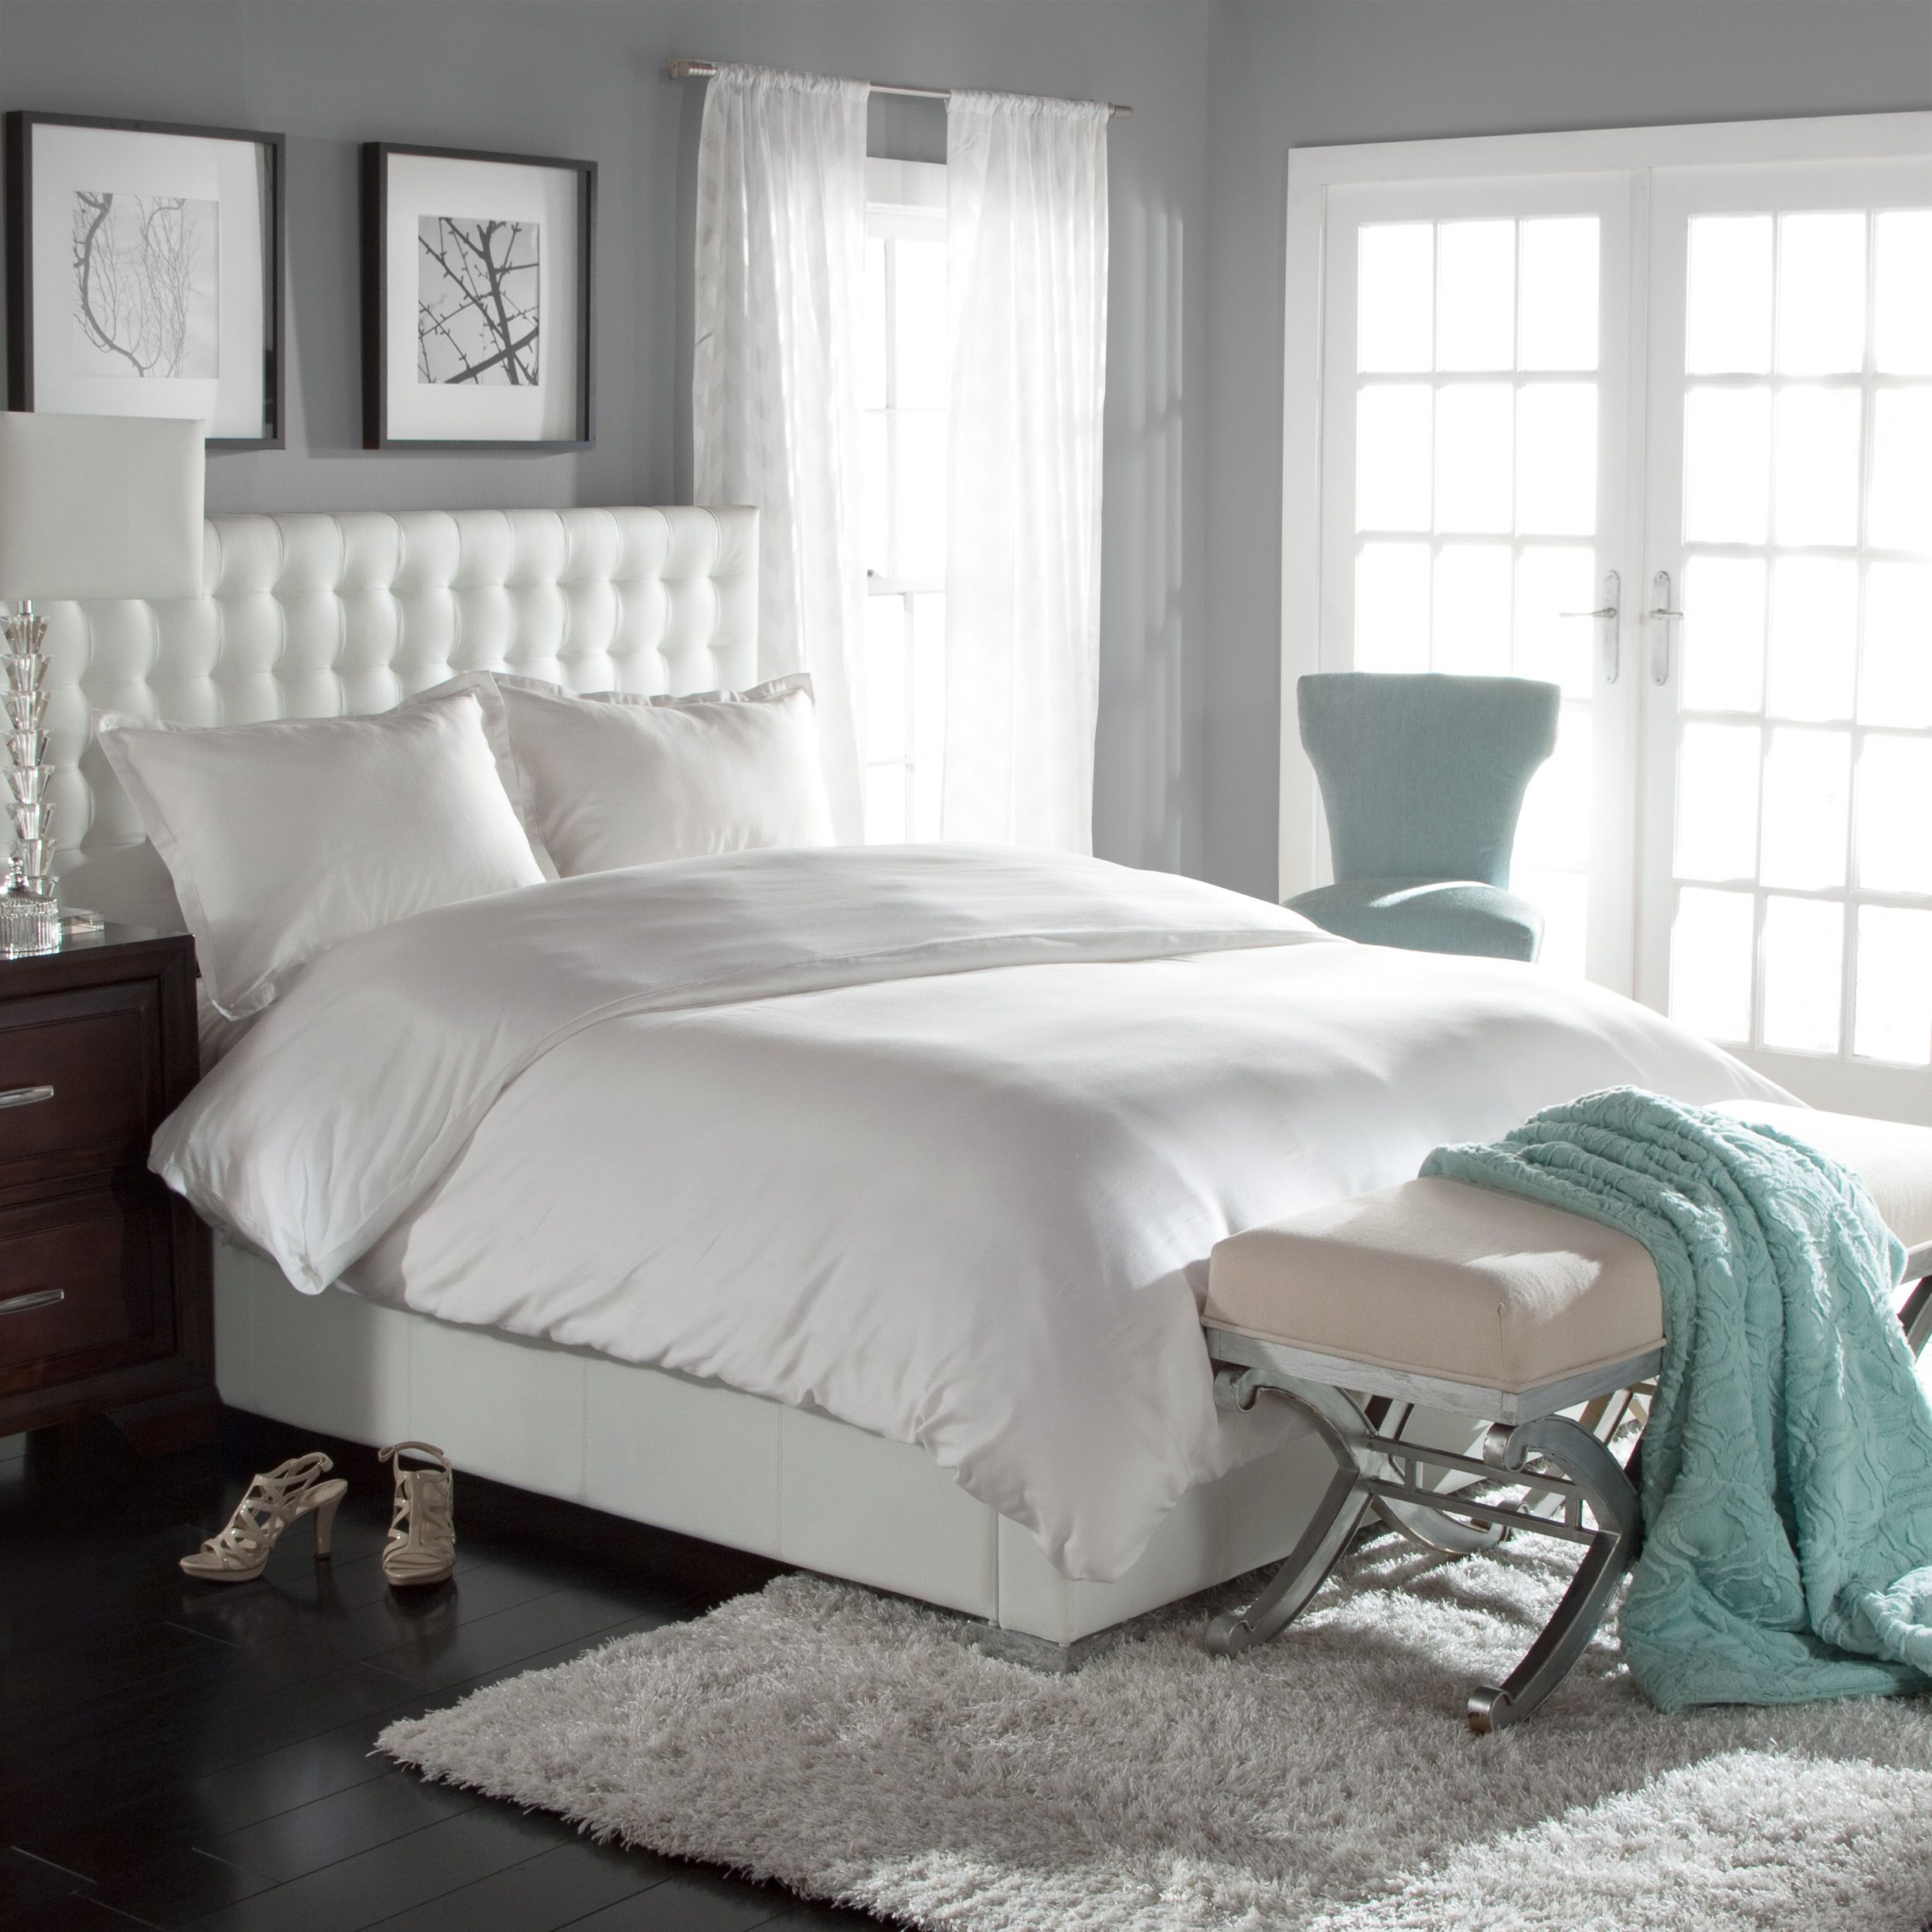 piece shipping product linen today free bath blend overstock cover white amrapur set king cotton duvet bedding overseas